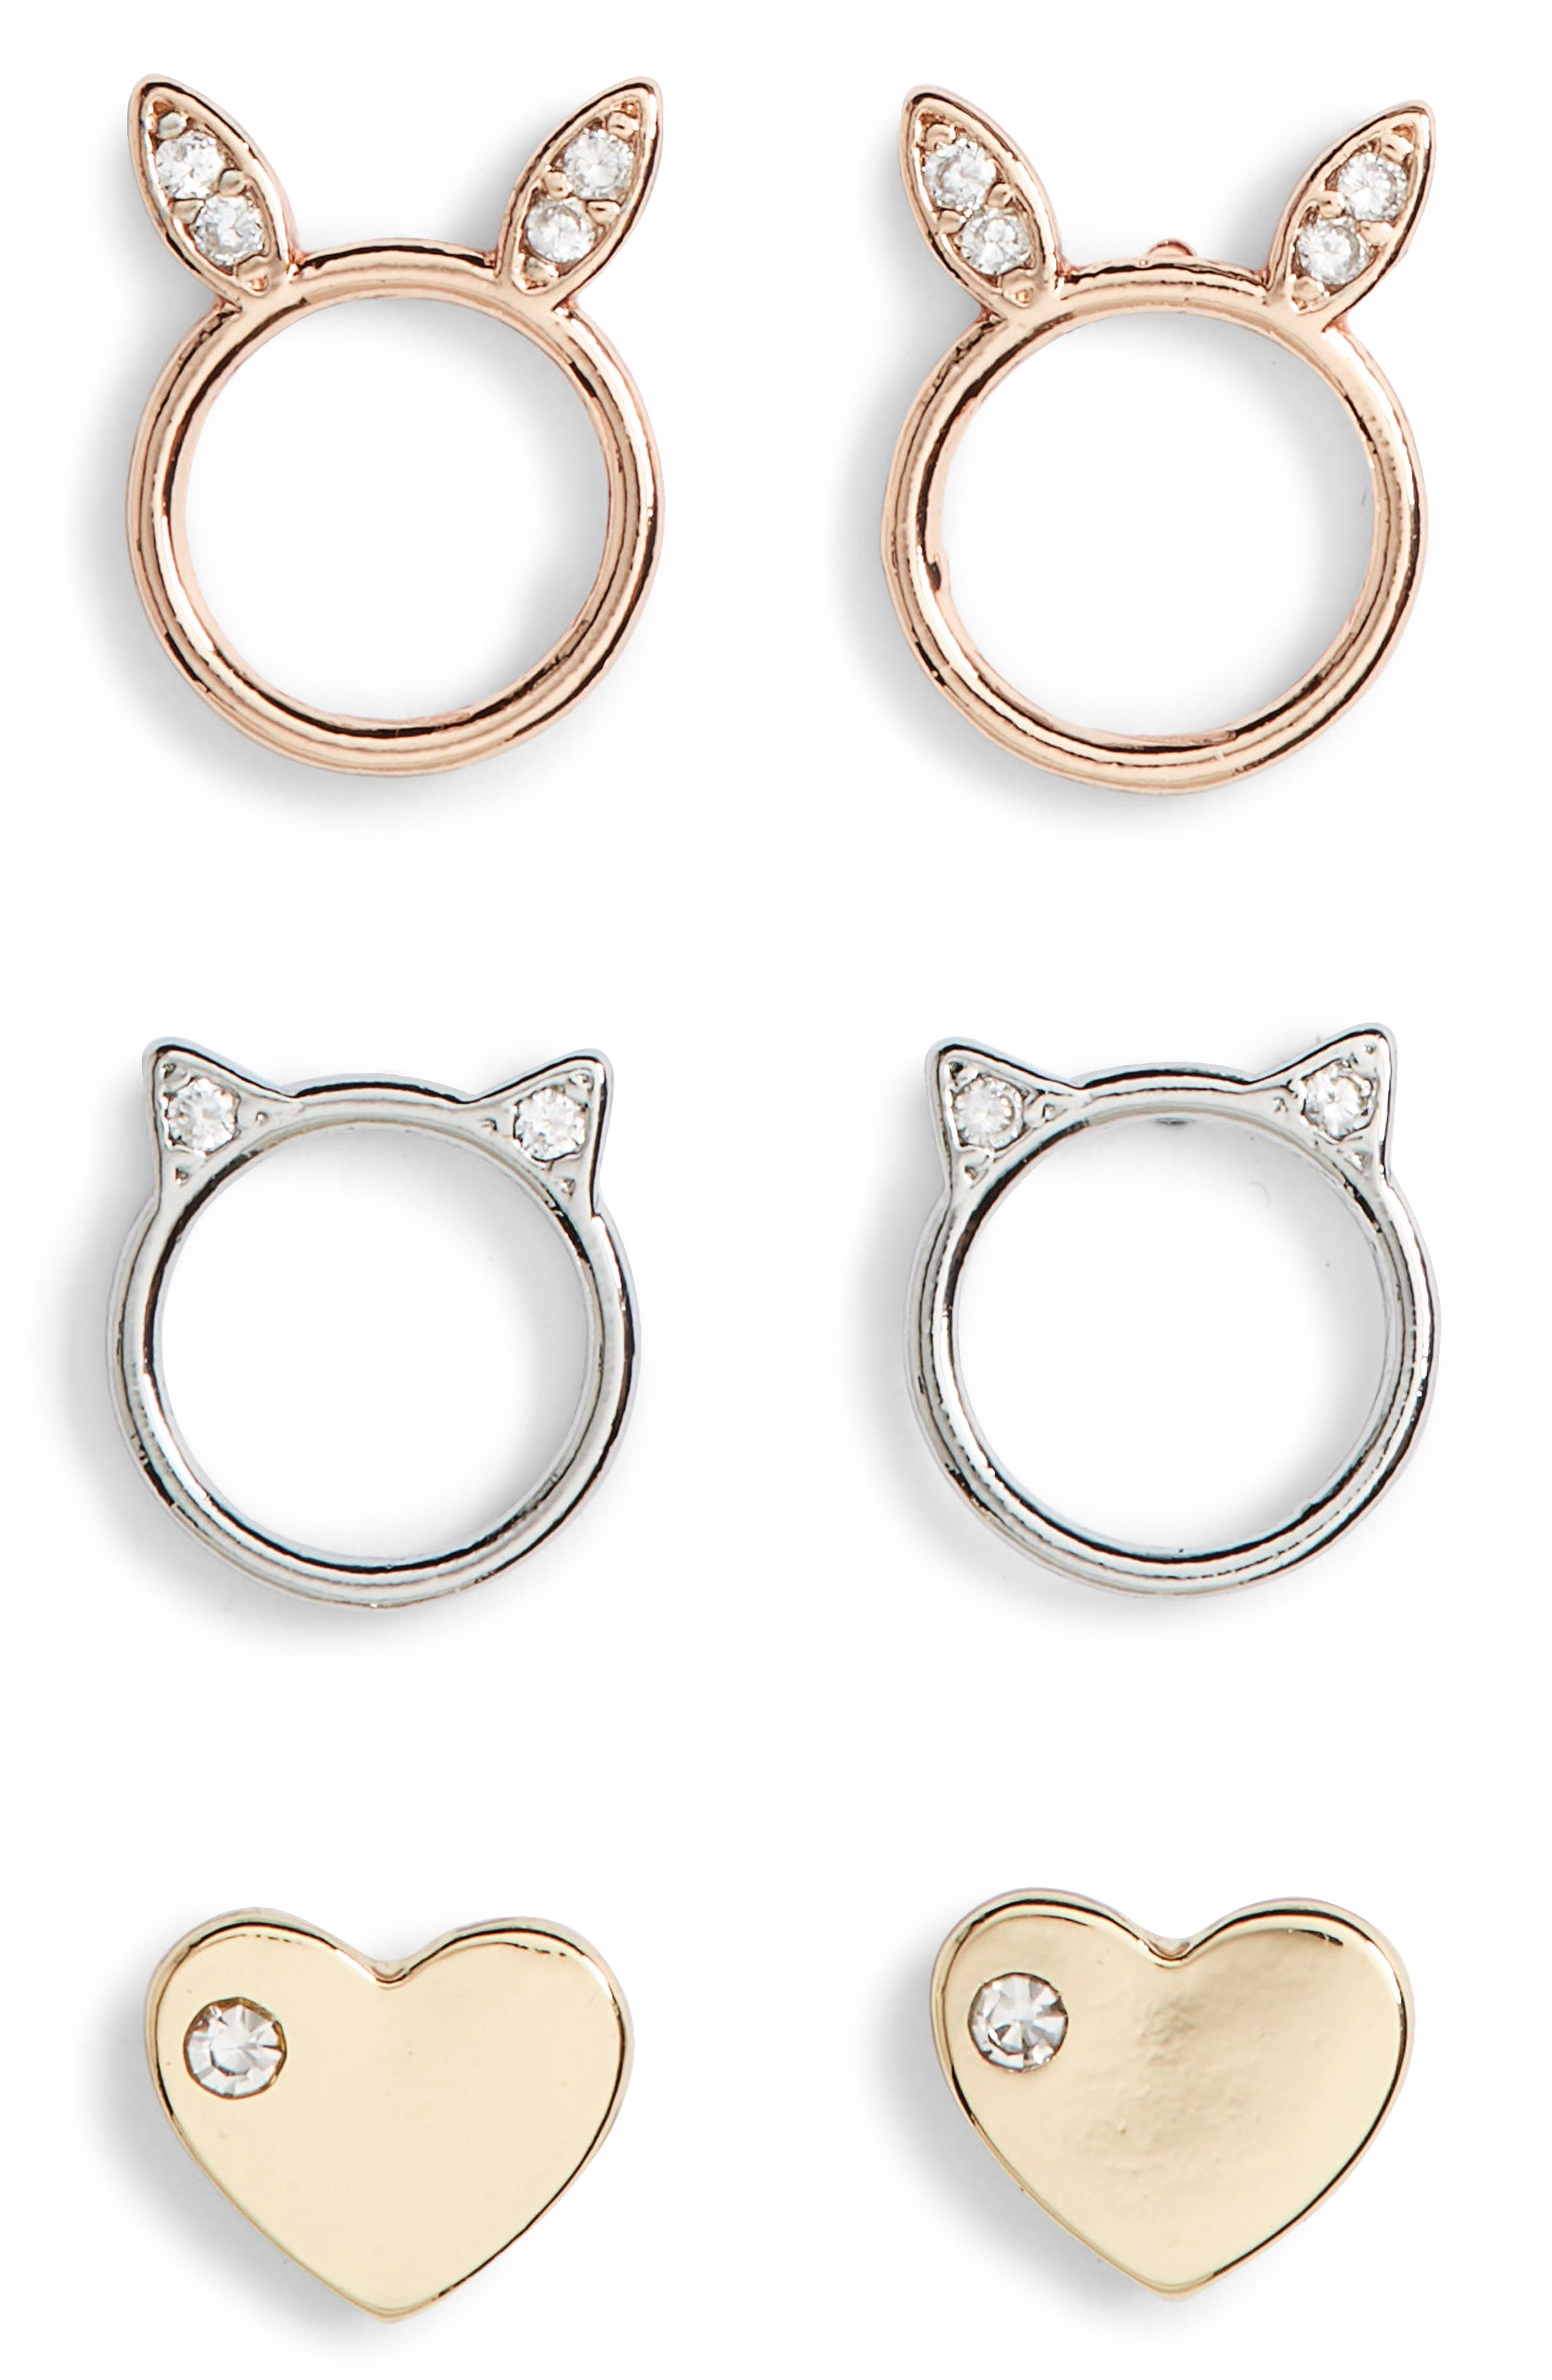 Animal Love Assorted 3-Pack Stud Earrings,                         Main,                         color, Gold/ Silver/ Rose Gold